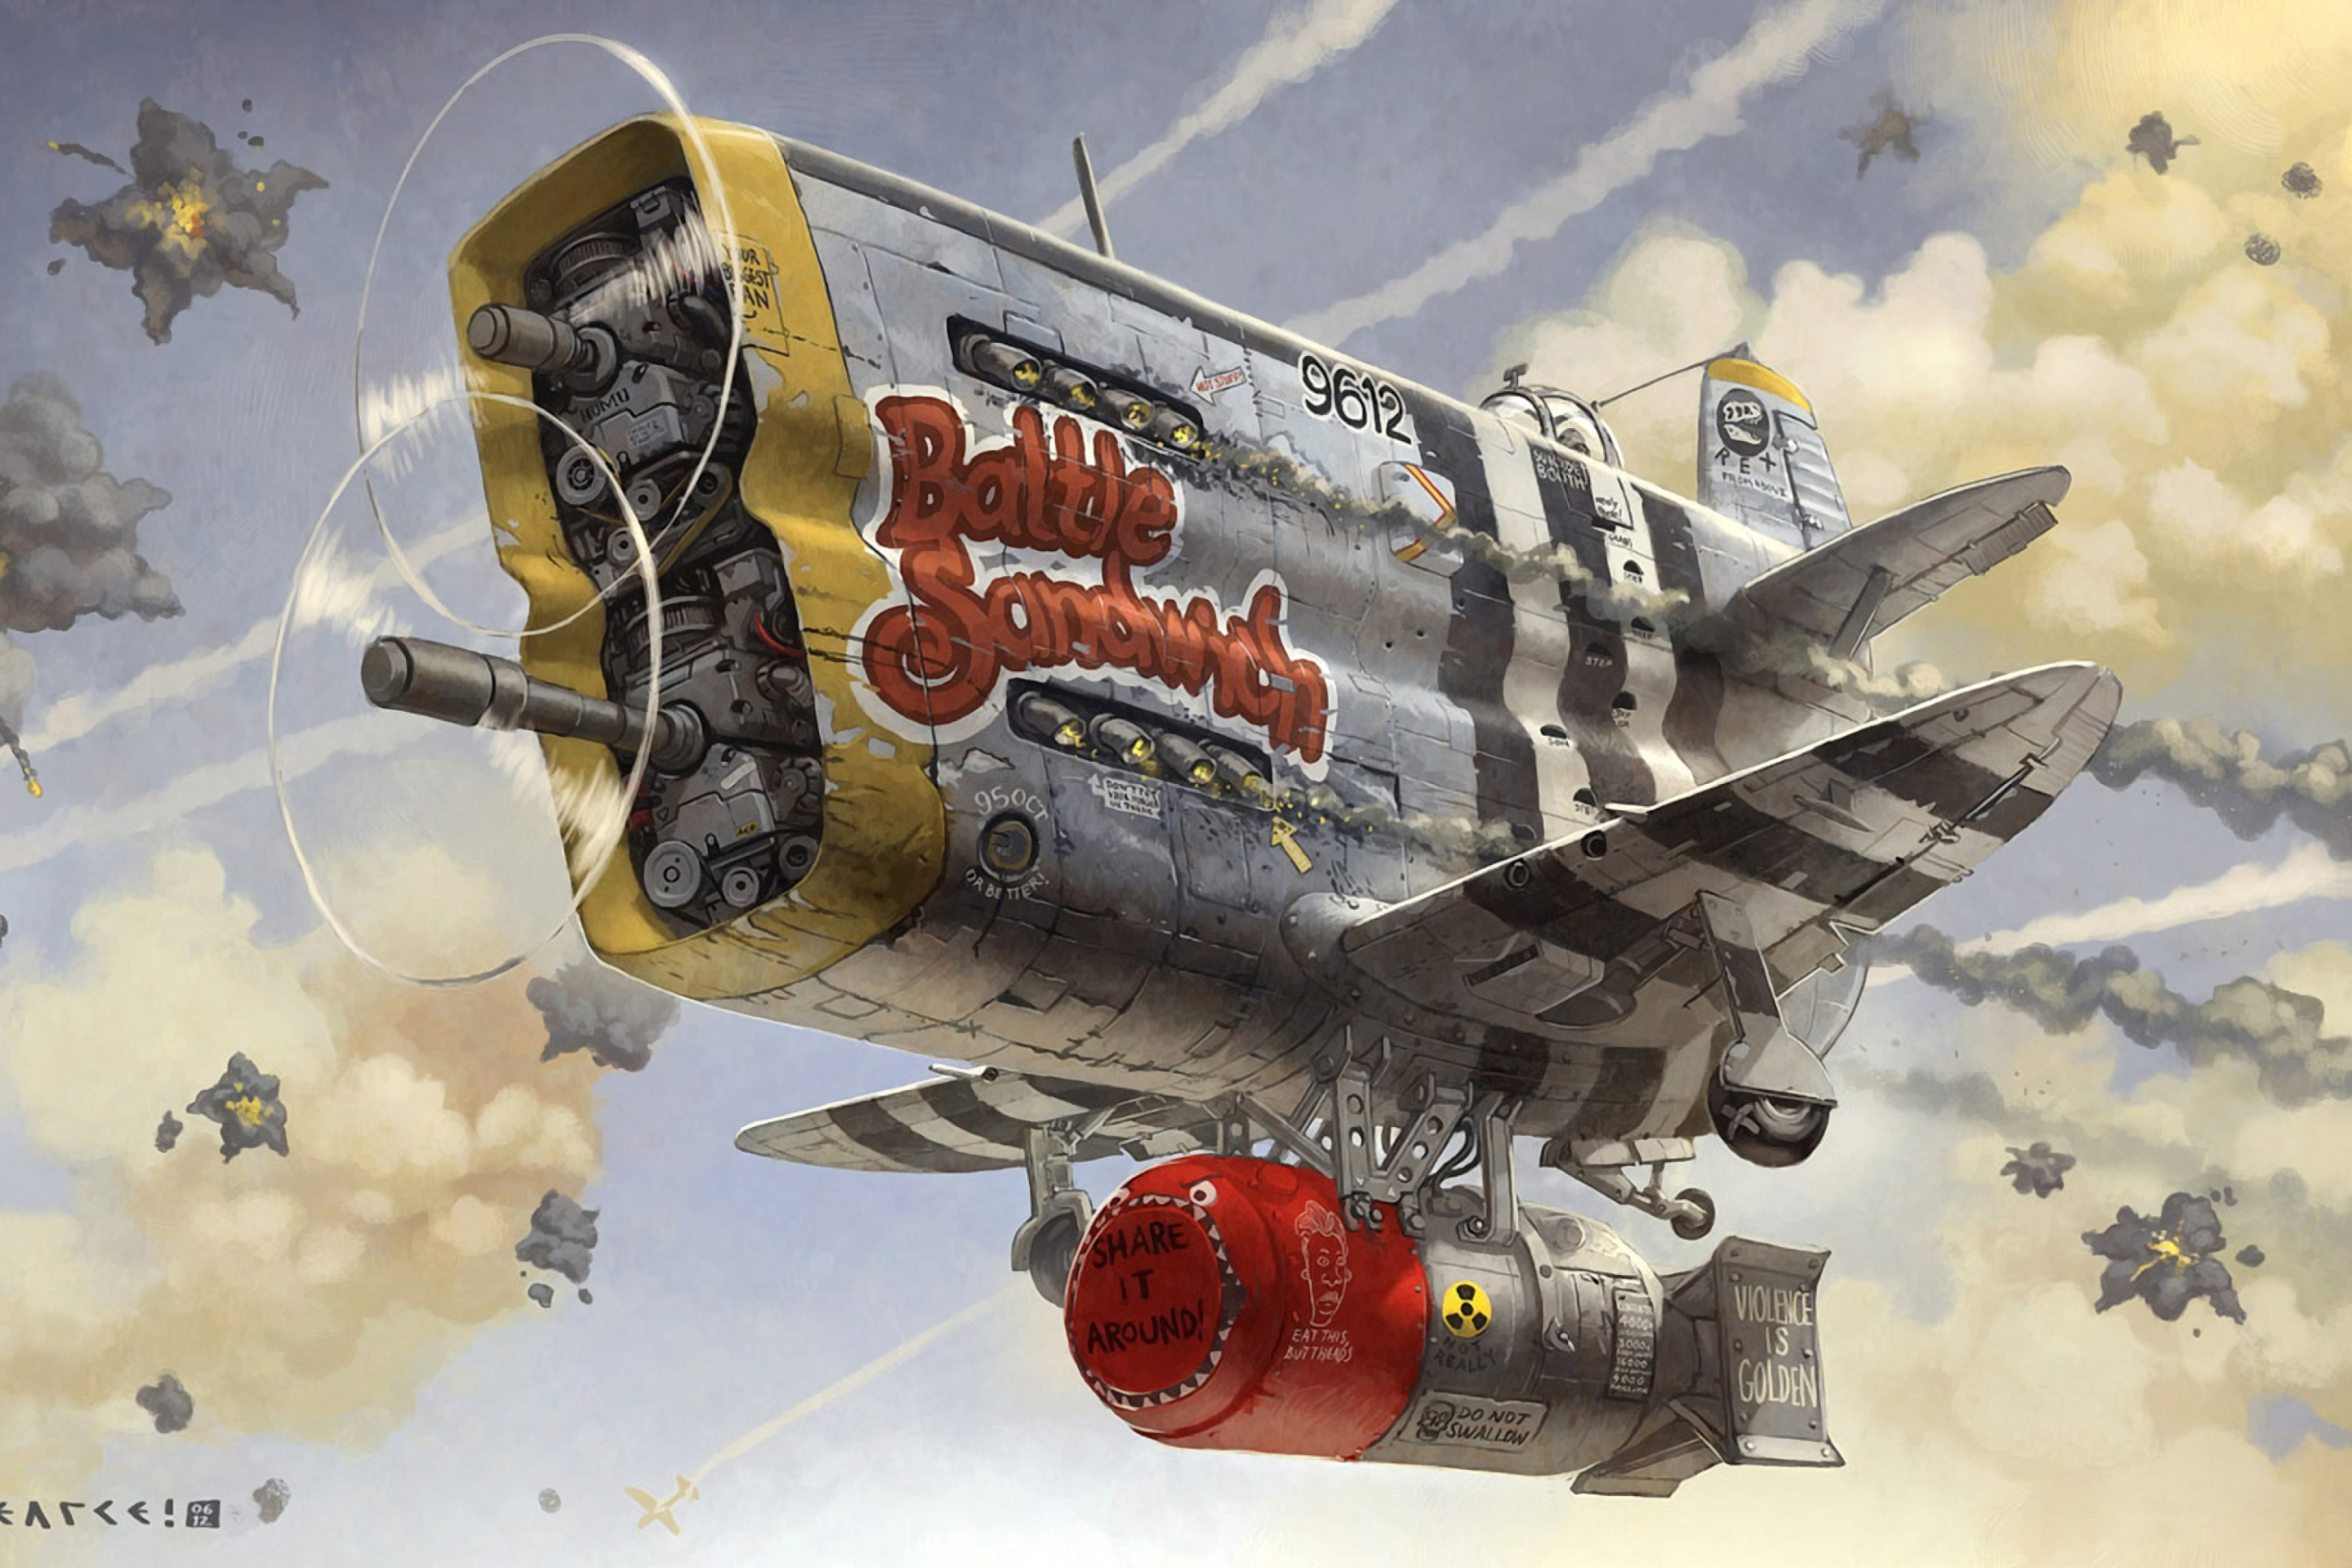 Battle Sandwich Airplane wallpaper 2880x1920